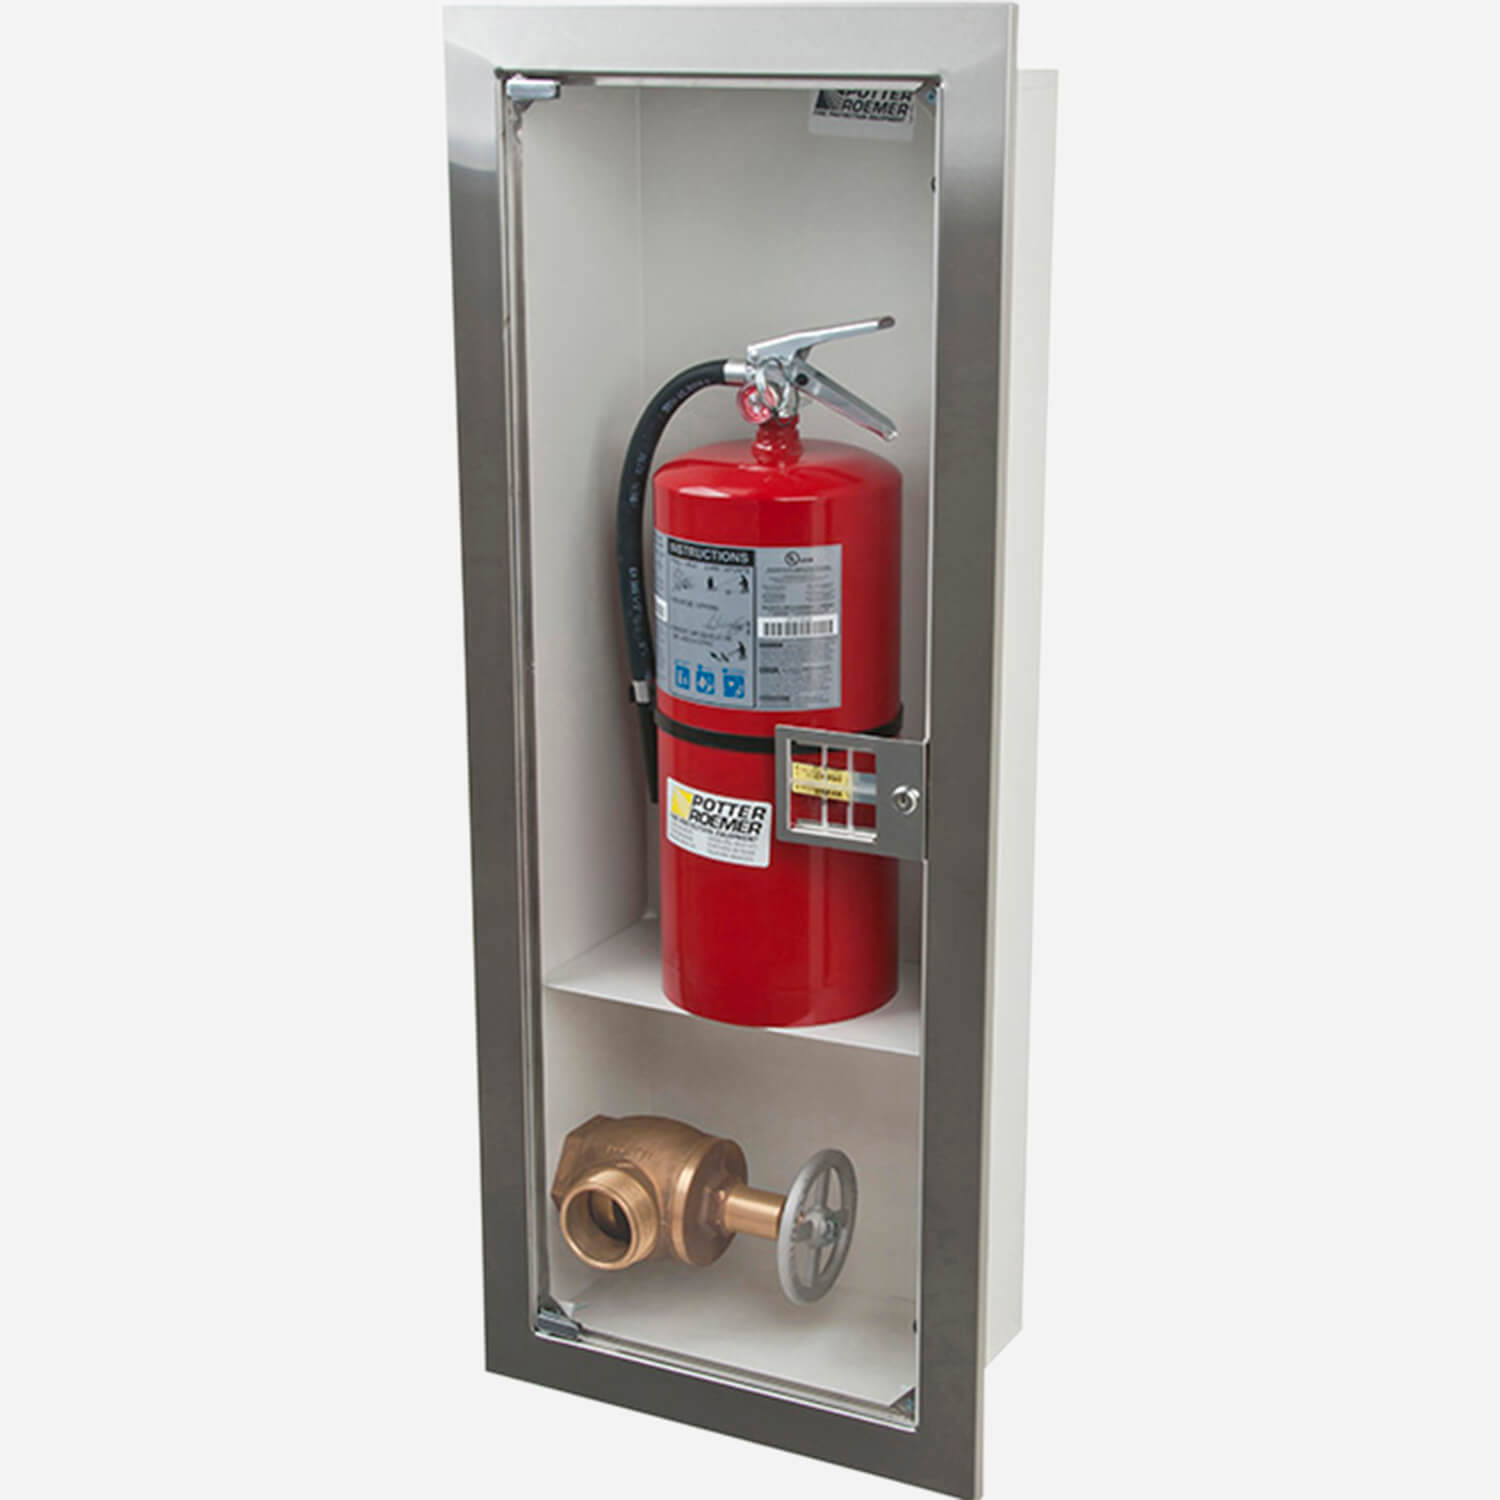 Recessed Buena Valve & Fire Extinguisher Cabinet - Potter Roemer